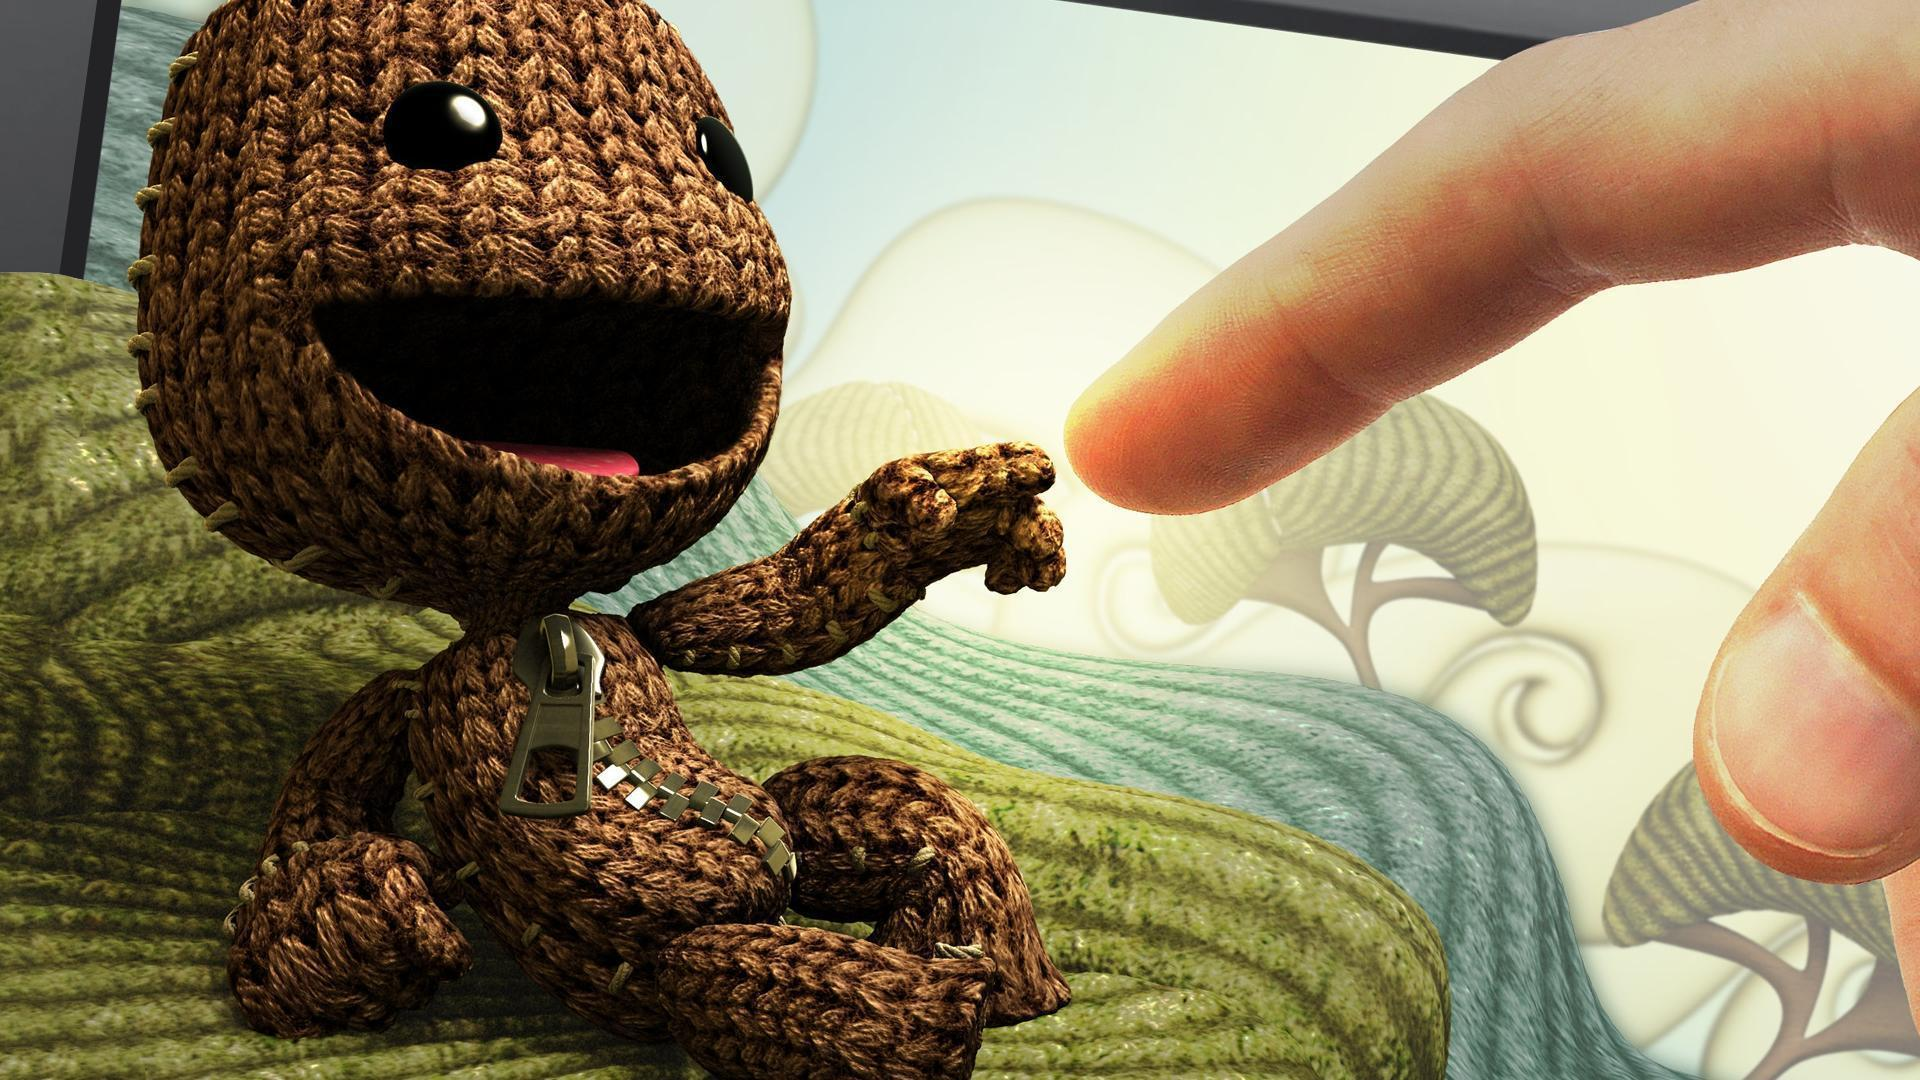 32 LittleBigPlanet Wallpapers